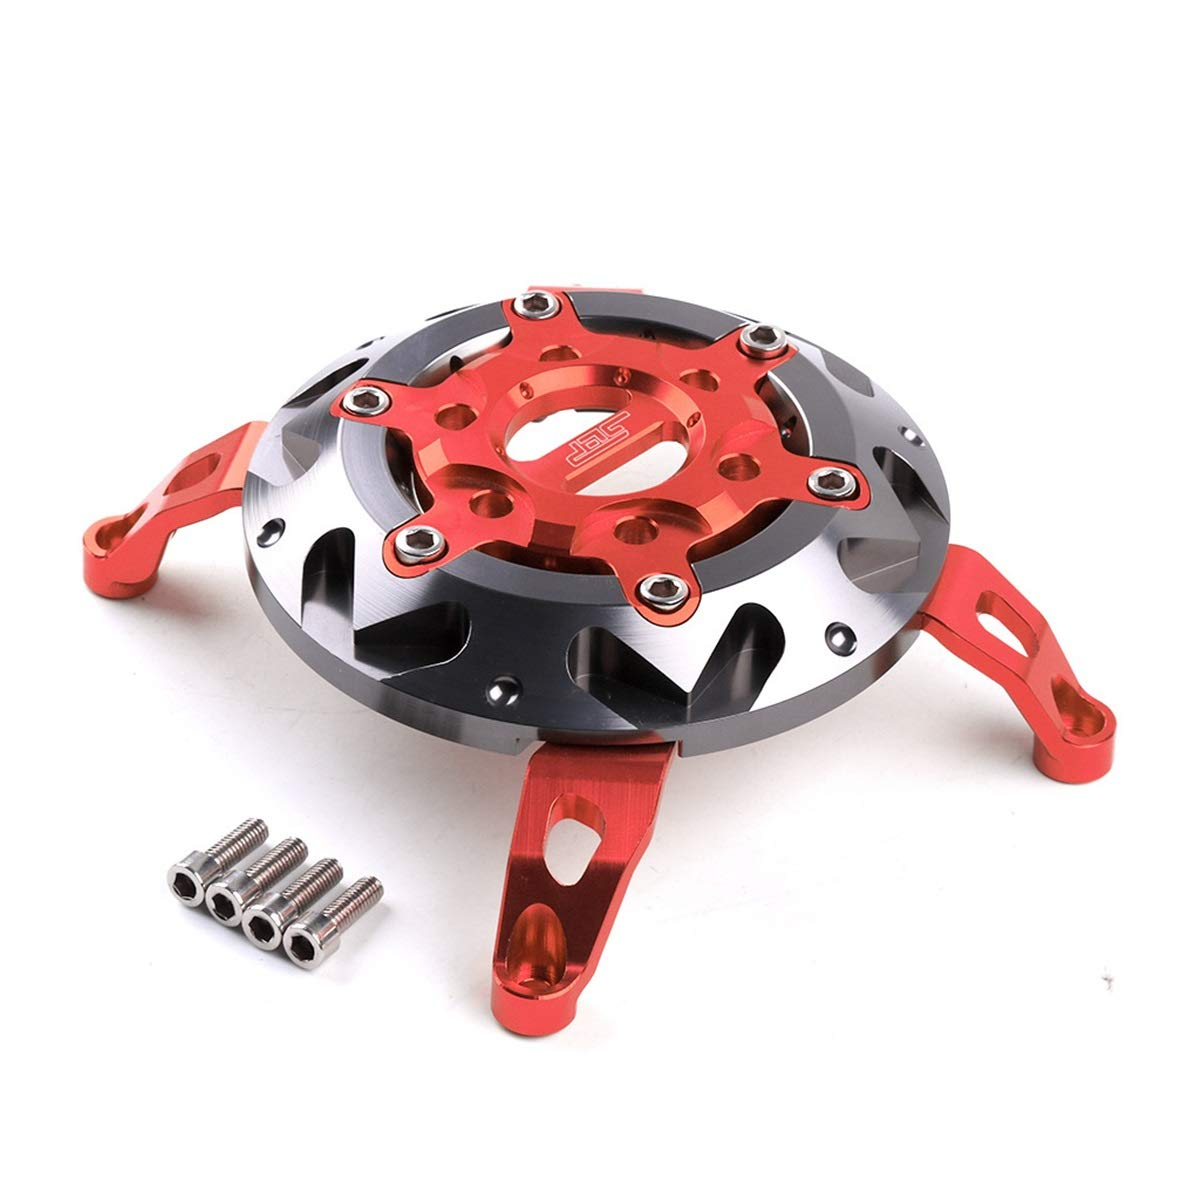 CONGCASE Motorcycle Compatible with Yamaha Smax155 Modified Aluminum Alloy Fan Blade Engine Cover (Color : Red) by CONGCASE